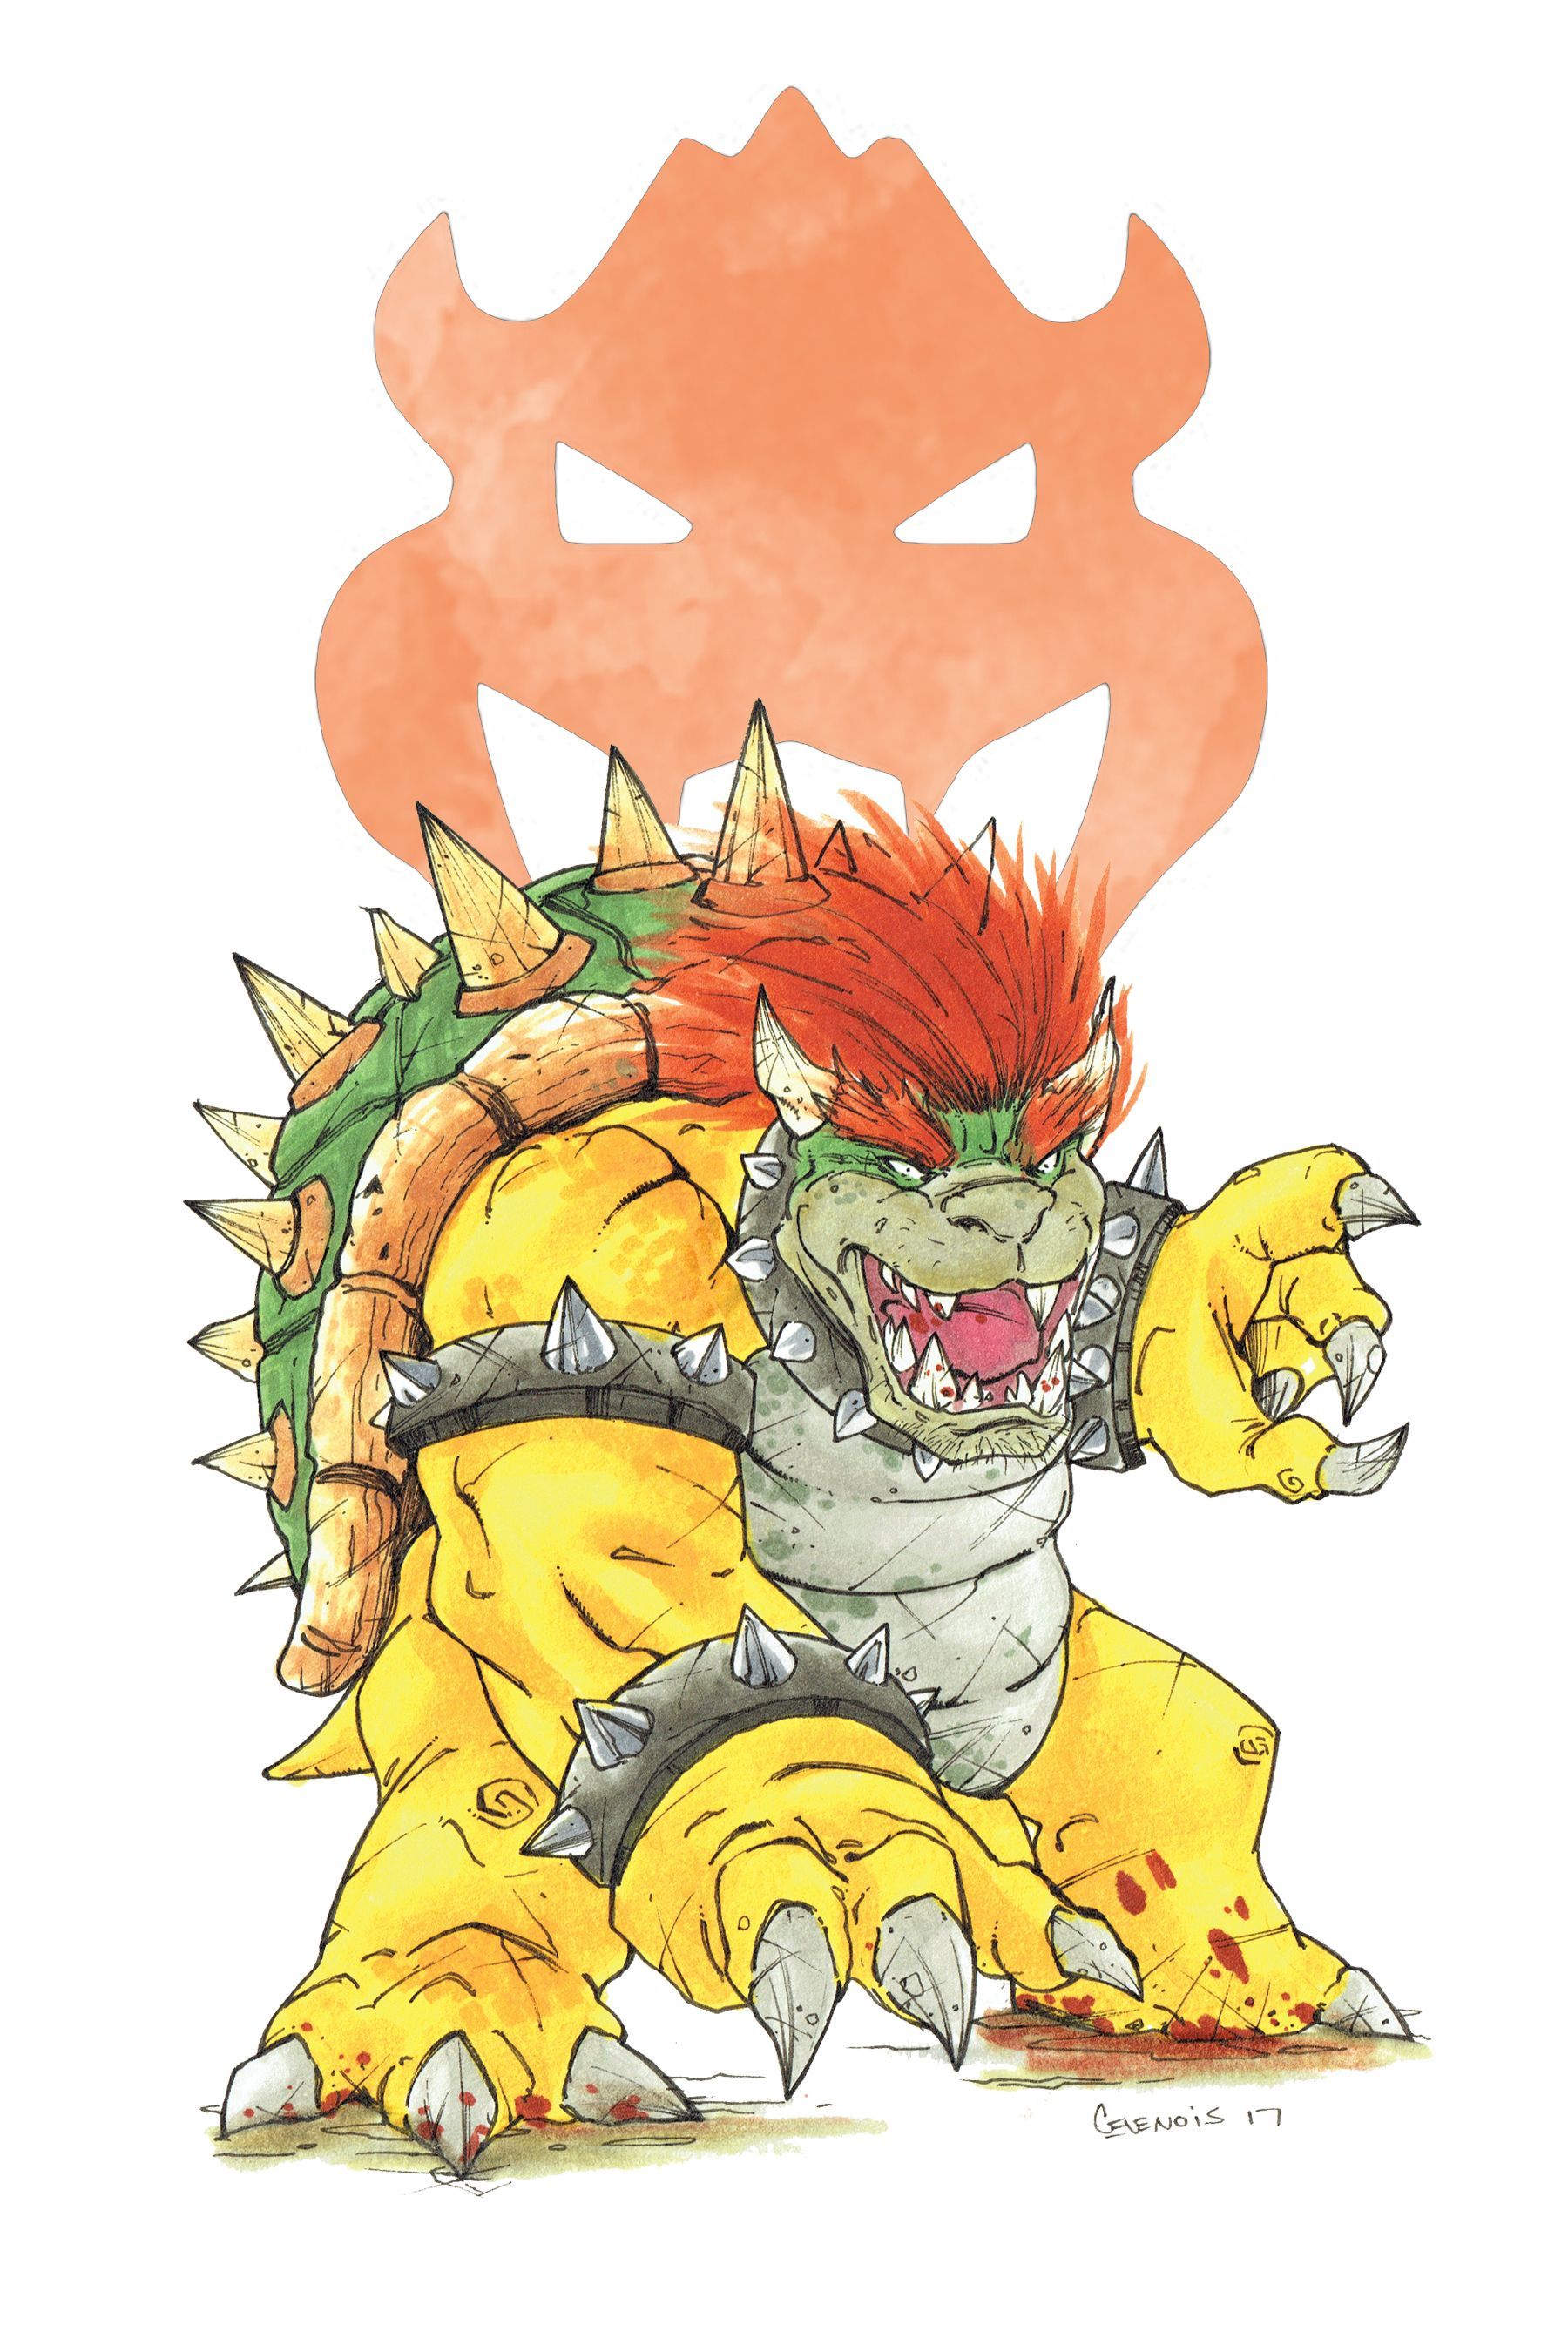 Copic Marker Drawing Bowser Copic Marker Drawings